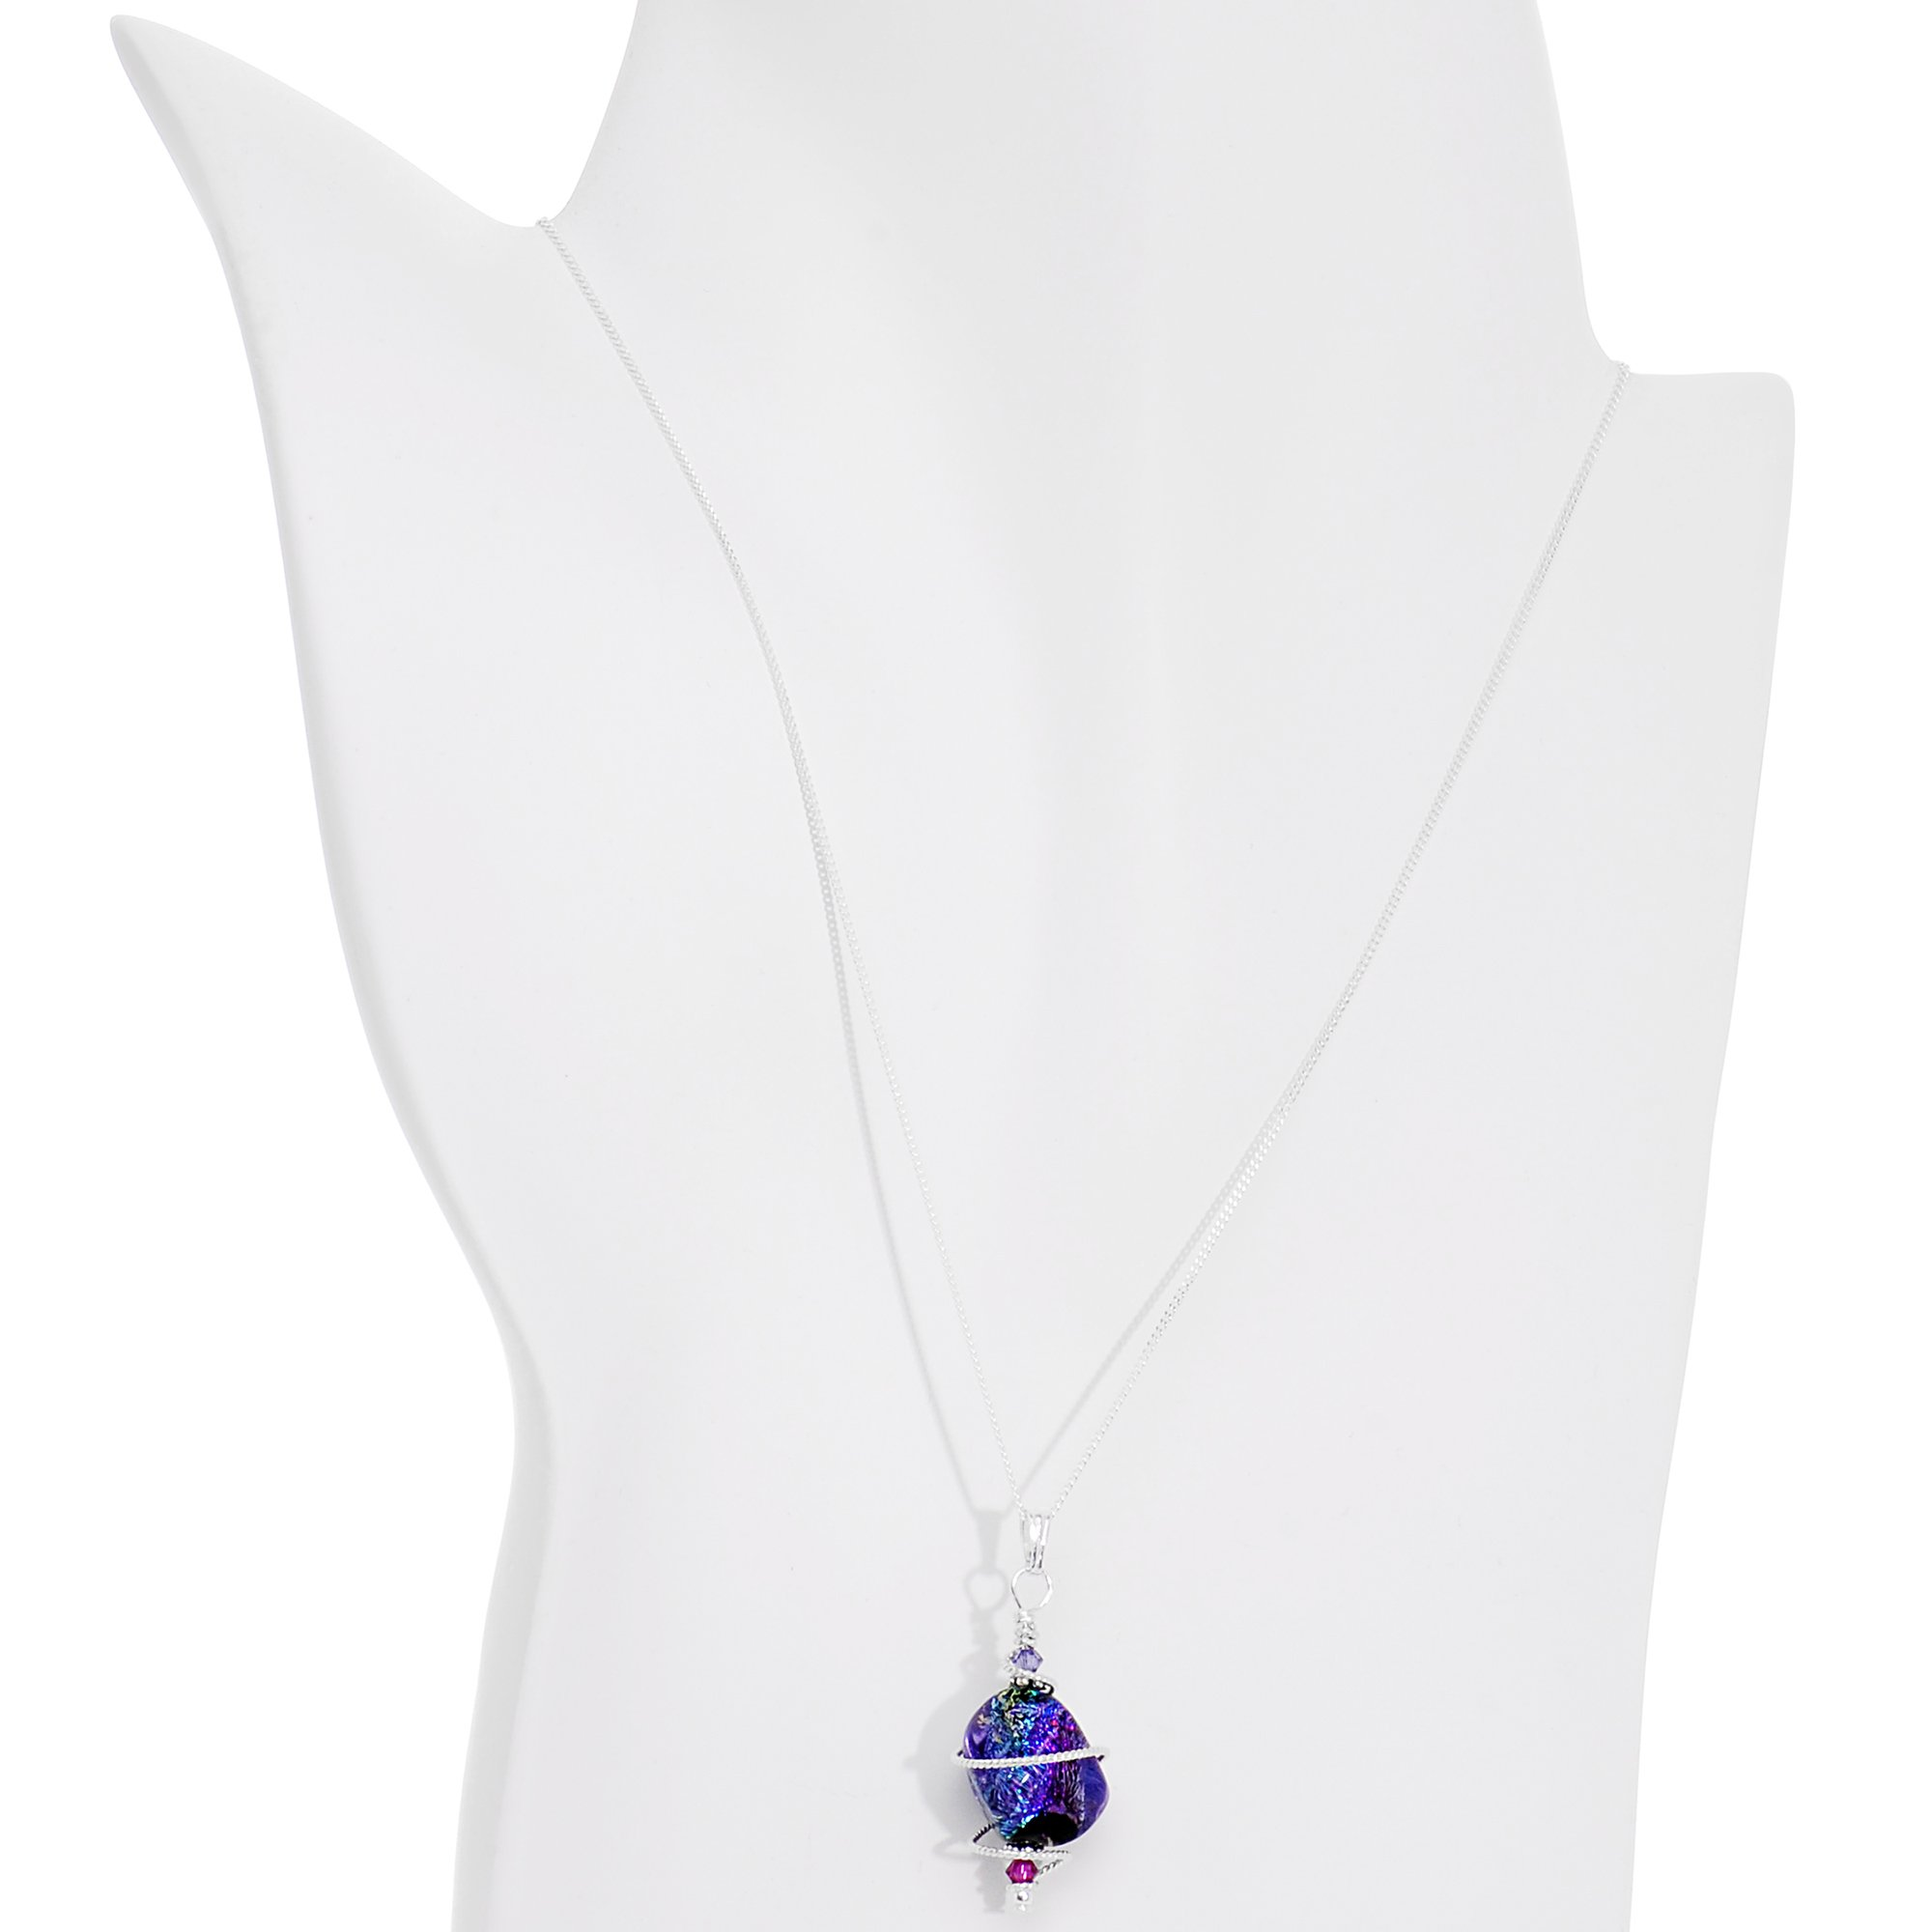 Body Candy Sterling Chain Space Goddess Pendant Necklace Created with Swarovski Crystals 18''